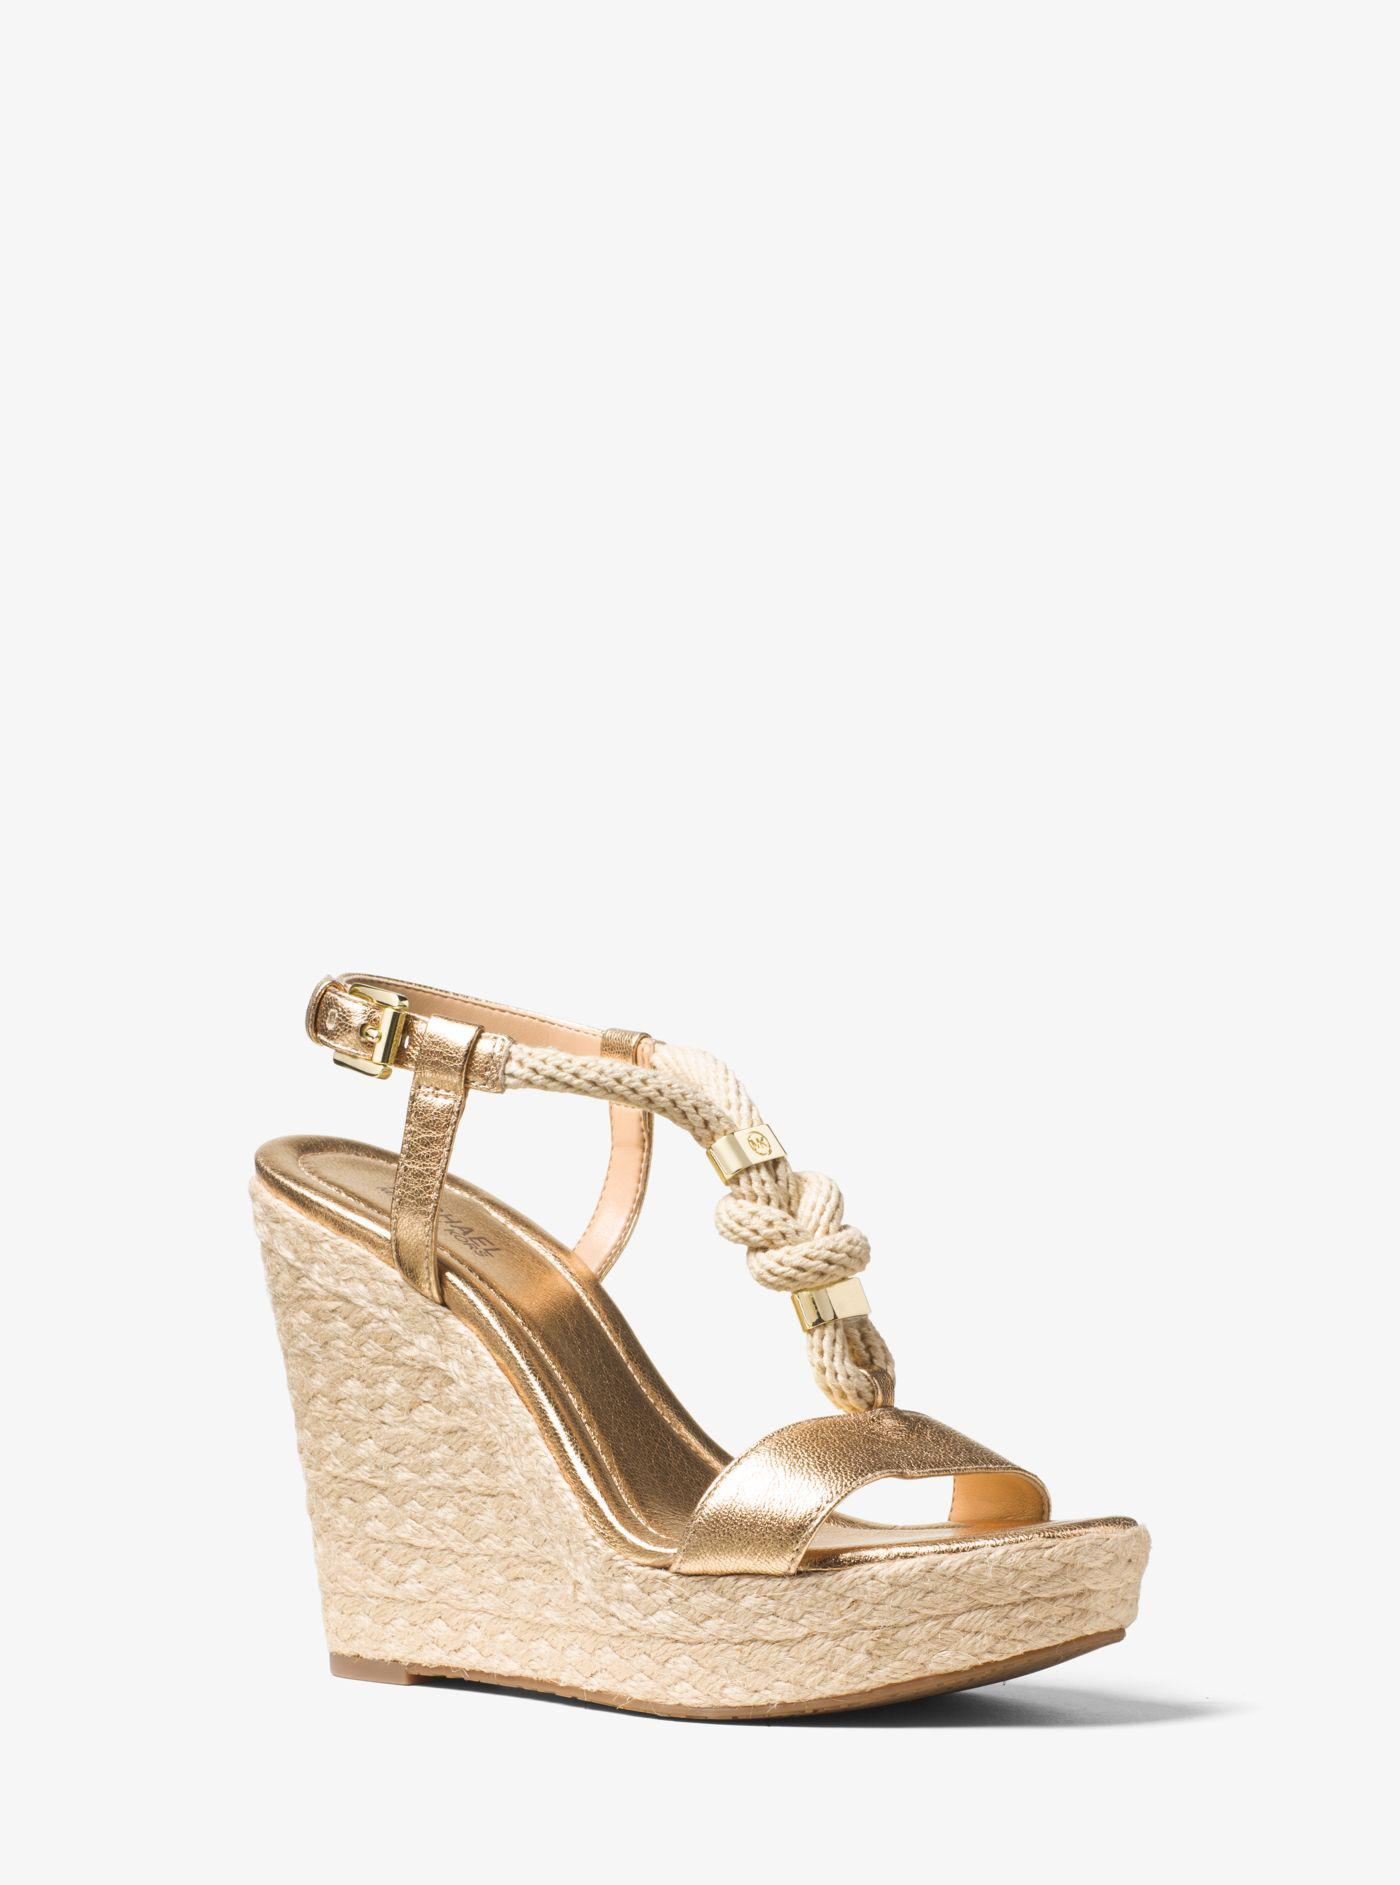 a40604637136 Lyst - Michael Kors Holly Rope-trim Metallic Leather Wedge in Metallic